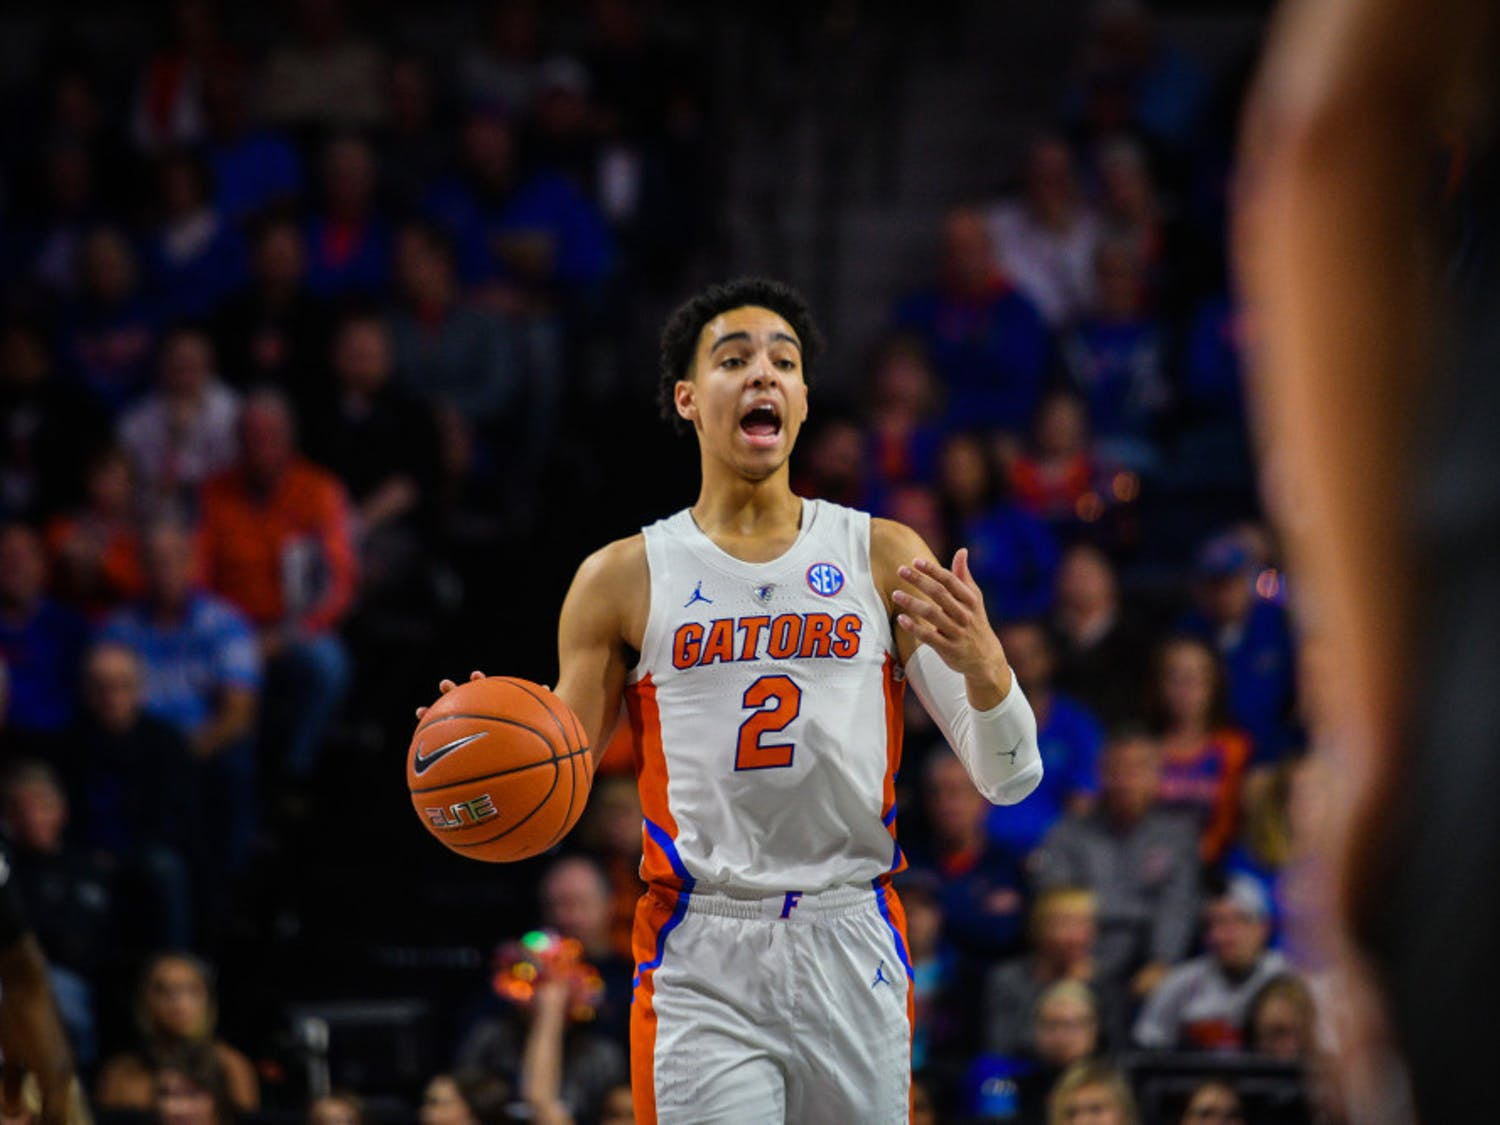 Sophomore point guard Andrew Nembhard decided to return to Florida and forego the 2019 NBA Draft. He led the team with 194 assists and also averaged 8 points per game.